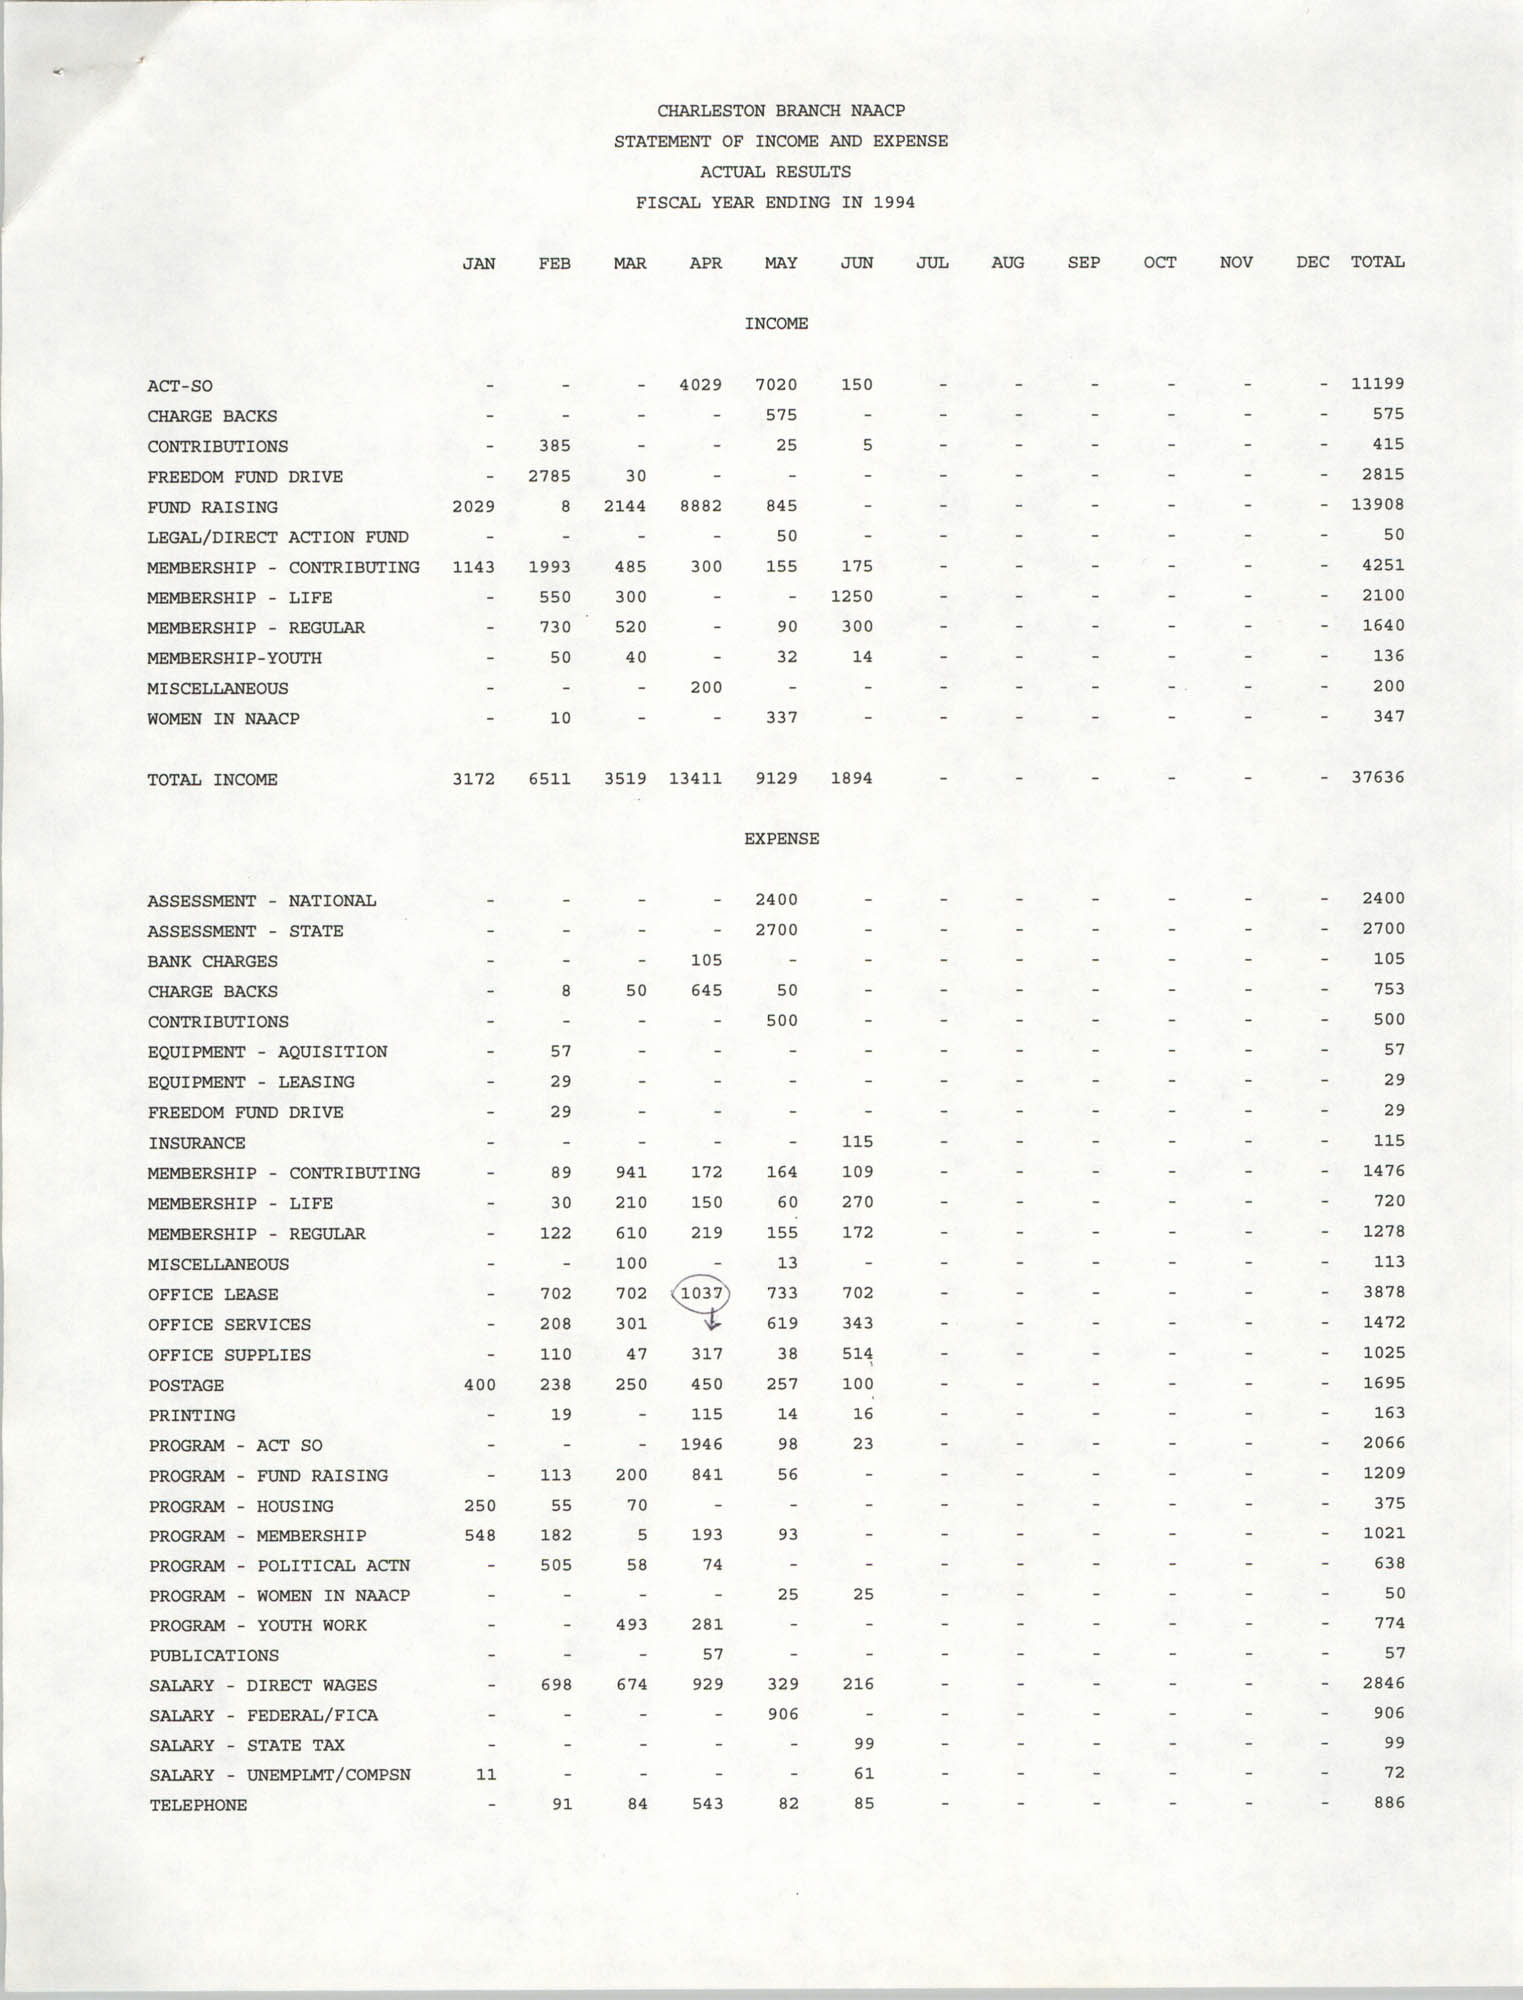 Charleston Branch of the NAACP Statement of Income and Expense, 1994